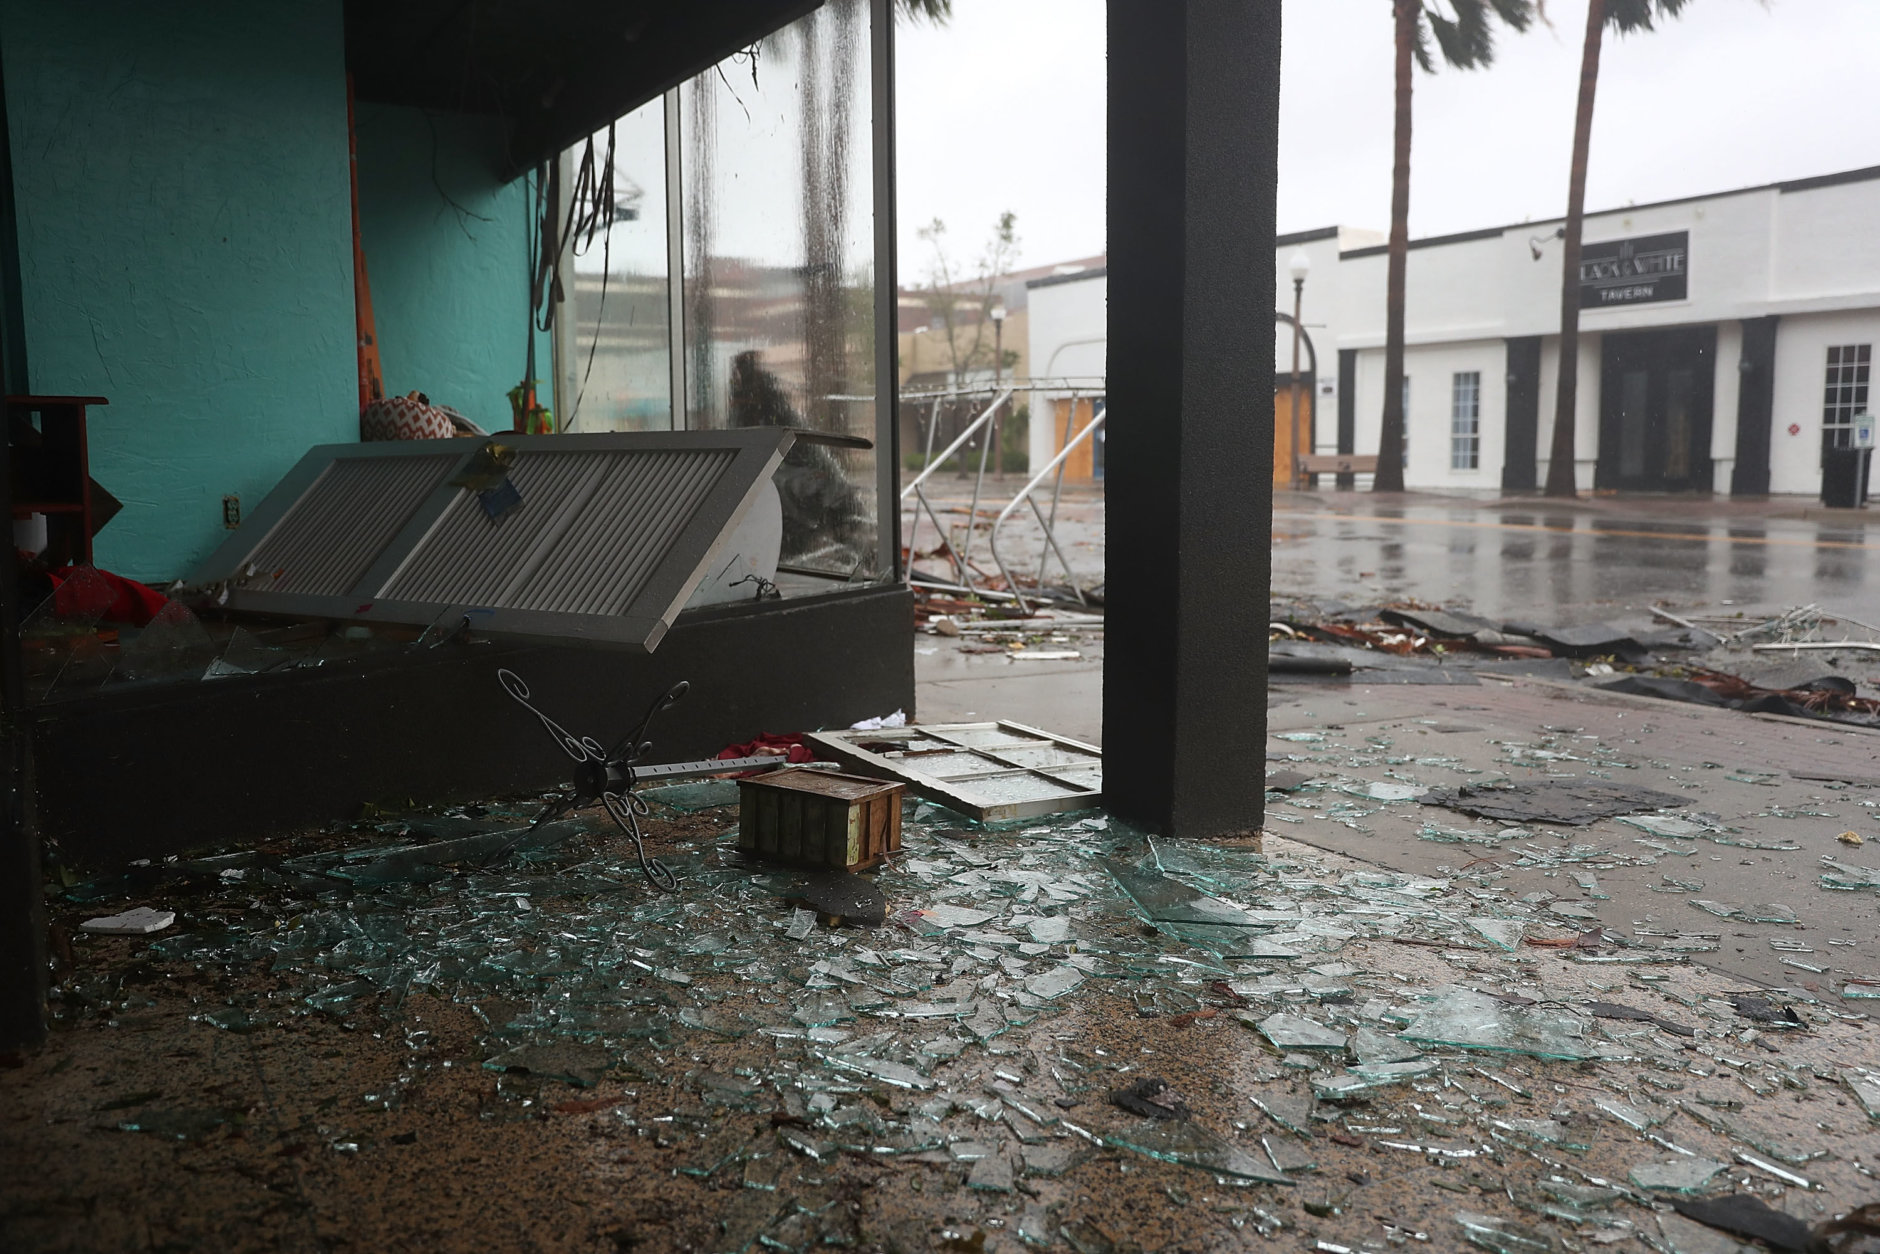 PANAMA CITY, FL - OCTOBER 10:  A stores windows are seen shattered as hurricane Michael passed through the downtown area on October 10, 2018 in Panama City, Florida. The hurricane hit the Florida Panhandle as a category 4 storm.  (Photo by Joe Raedle/Getty Images)